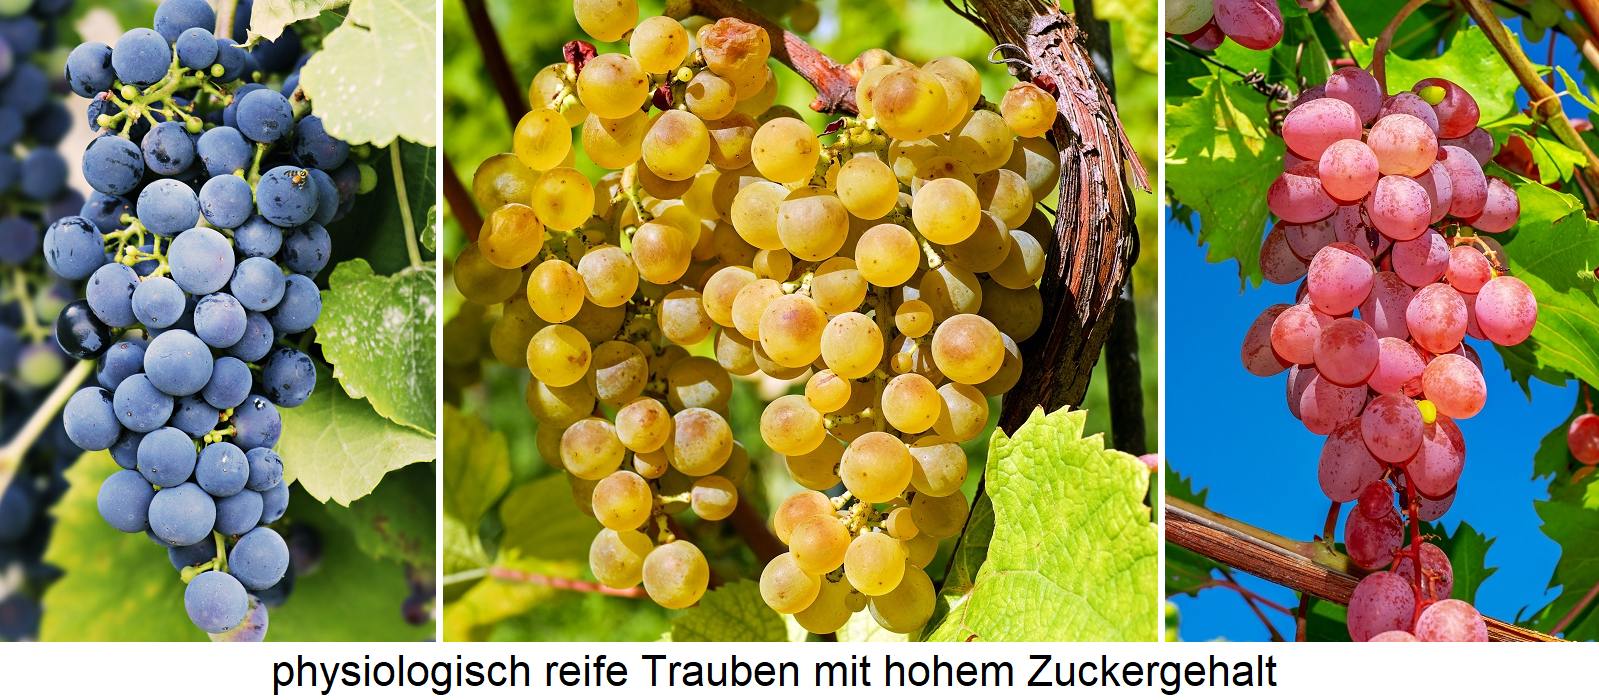 Must weight - physiologically mature grapes with high sugar content